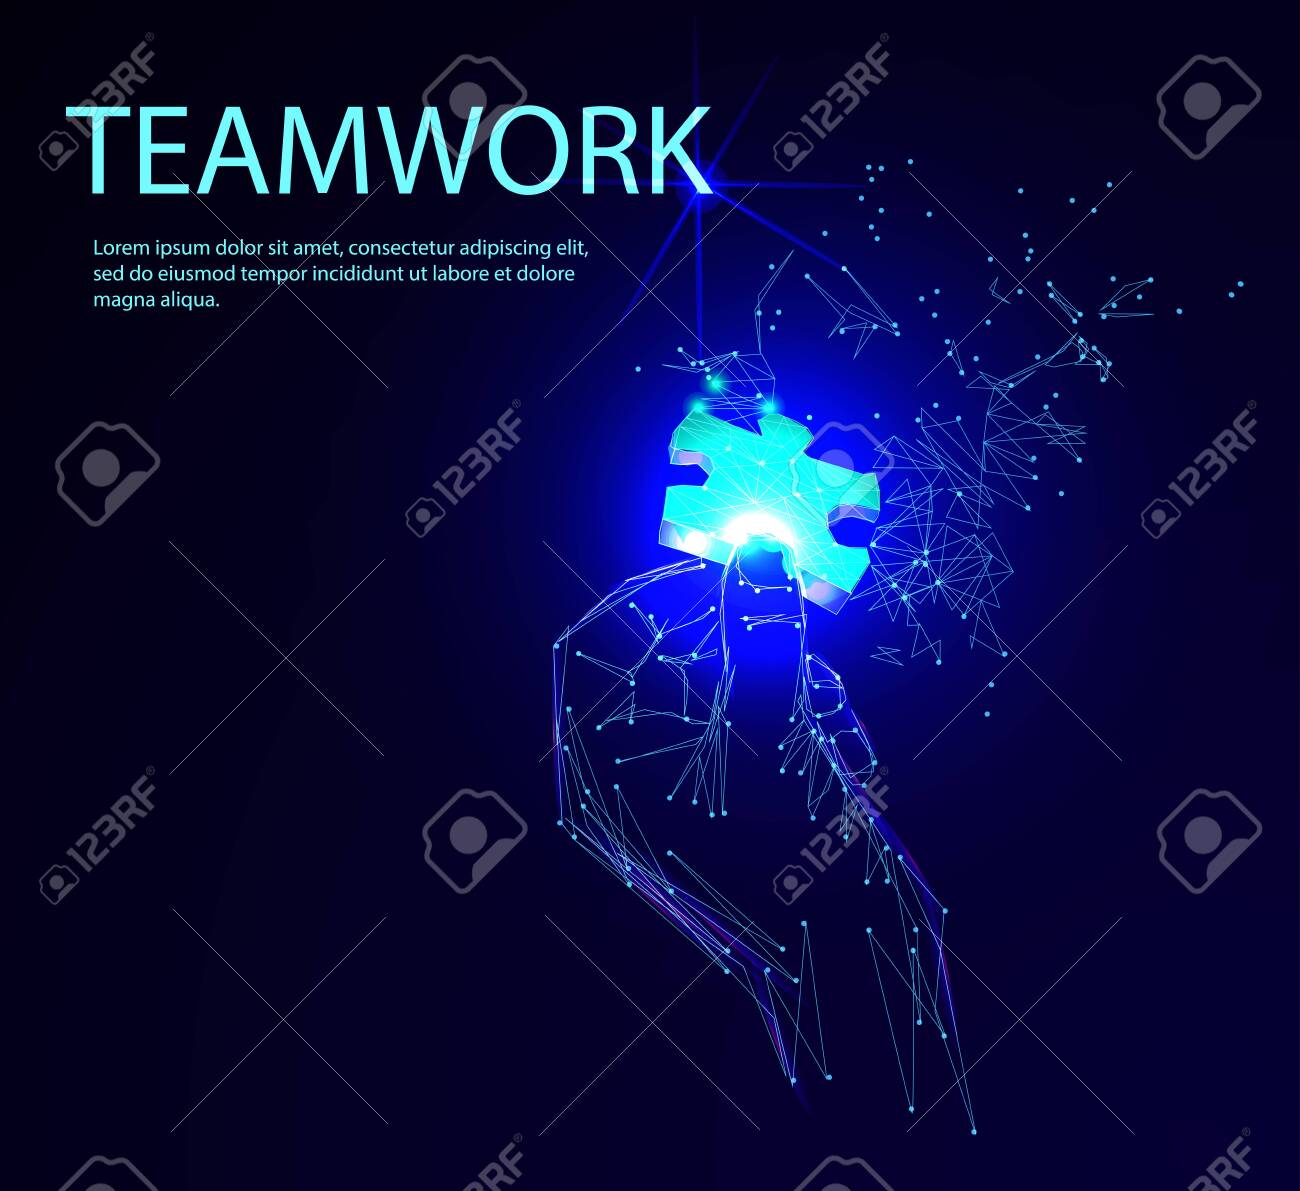 Abstract puzzle on dark blue background. Network or teamwork symbol composed of polygons. Low poly vector illustration of a starry sky or Cosmos, consists of lines, dots and shapes - 123516917